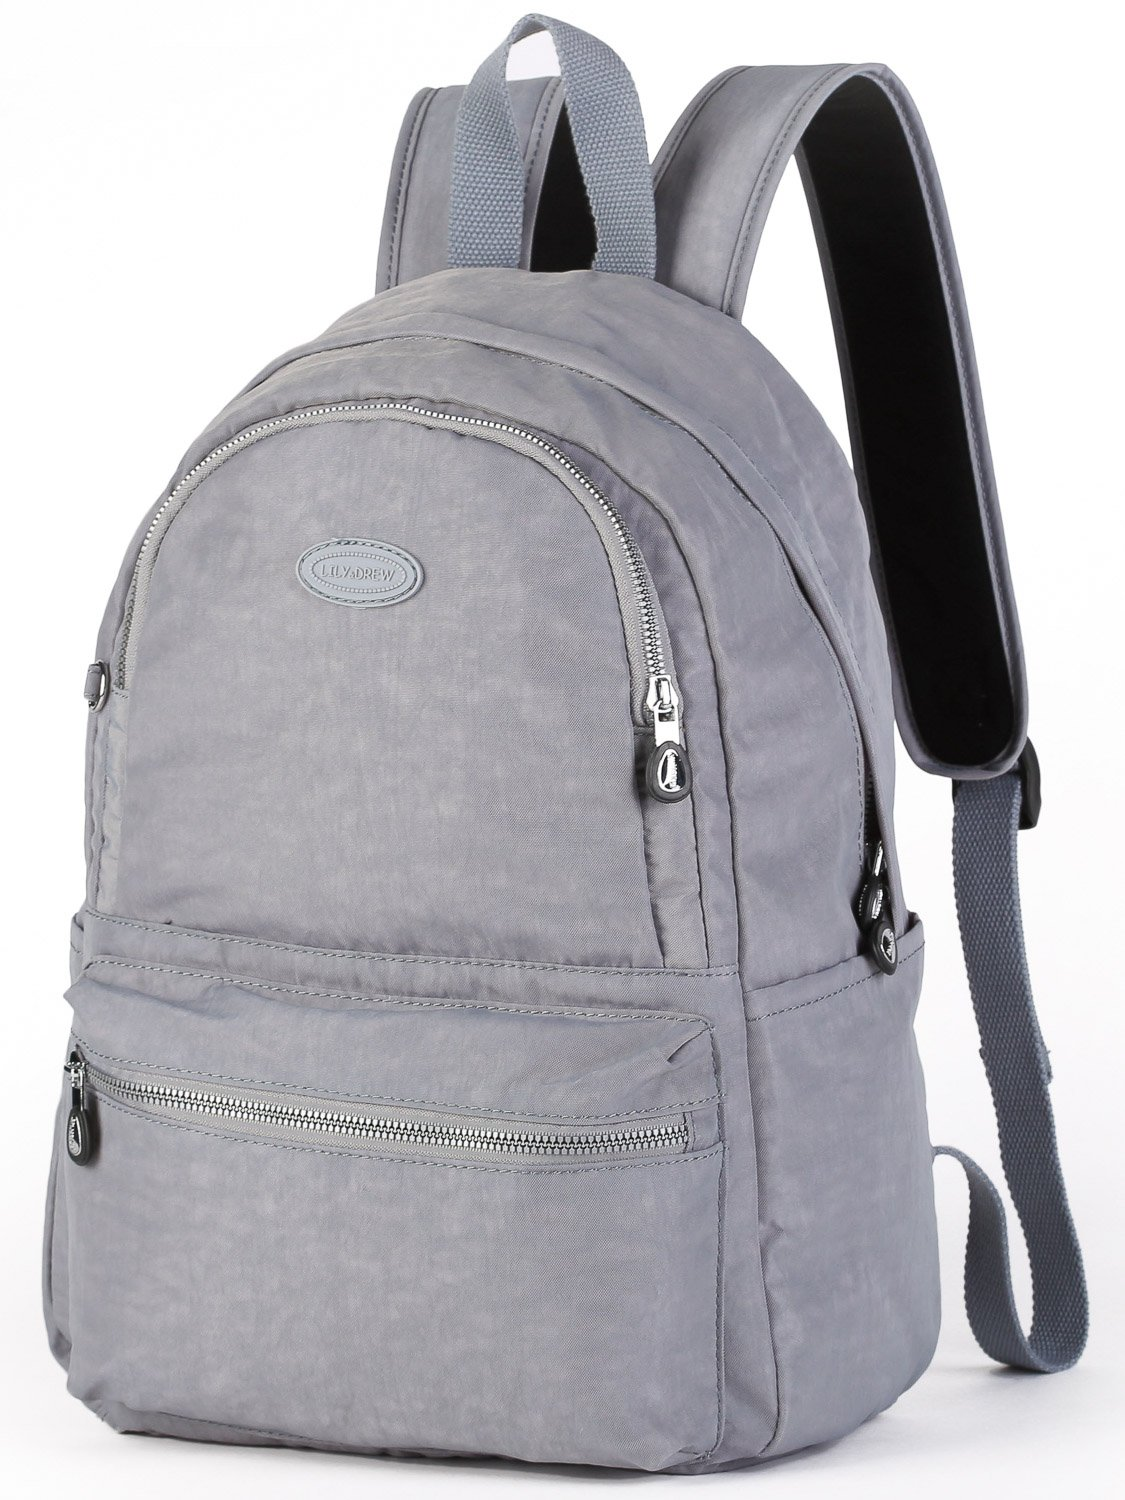 Lily & Drew Nylon Casual Travel Daypack Backpack with Trolley Strap (V2 Grey Medium) by Lily & Drew